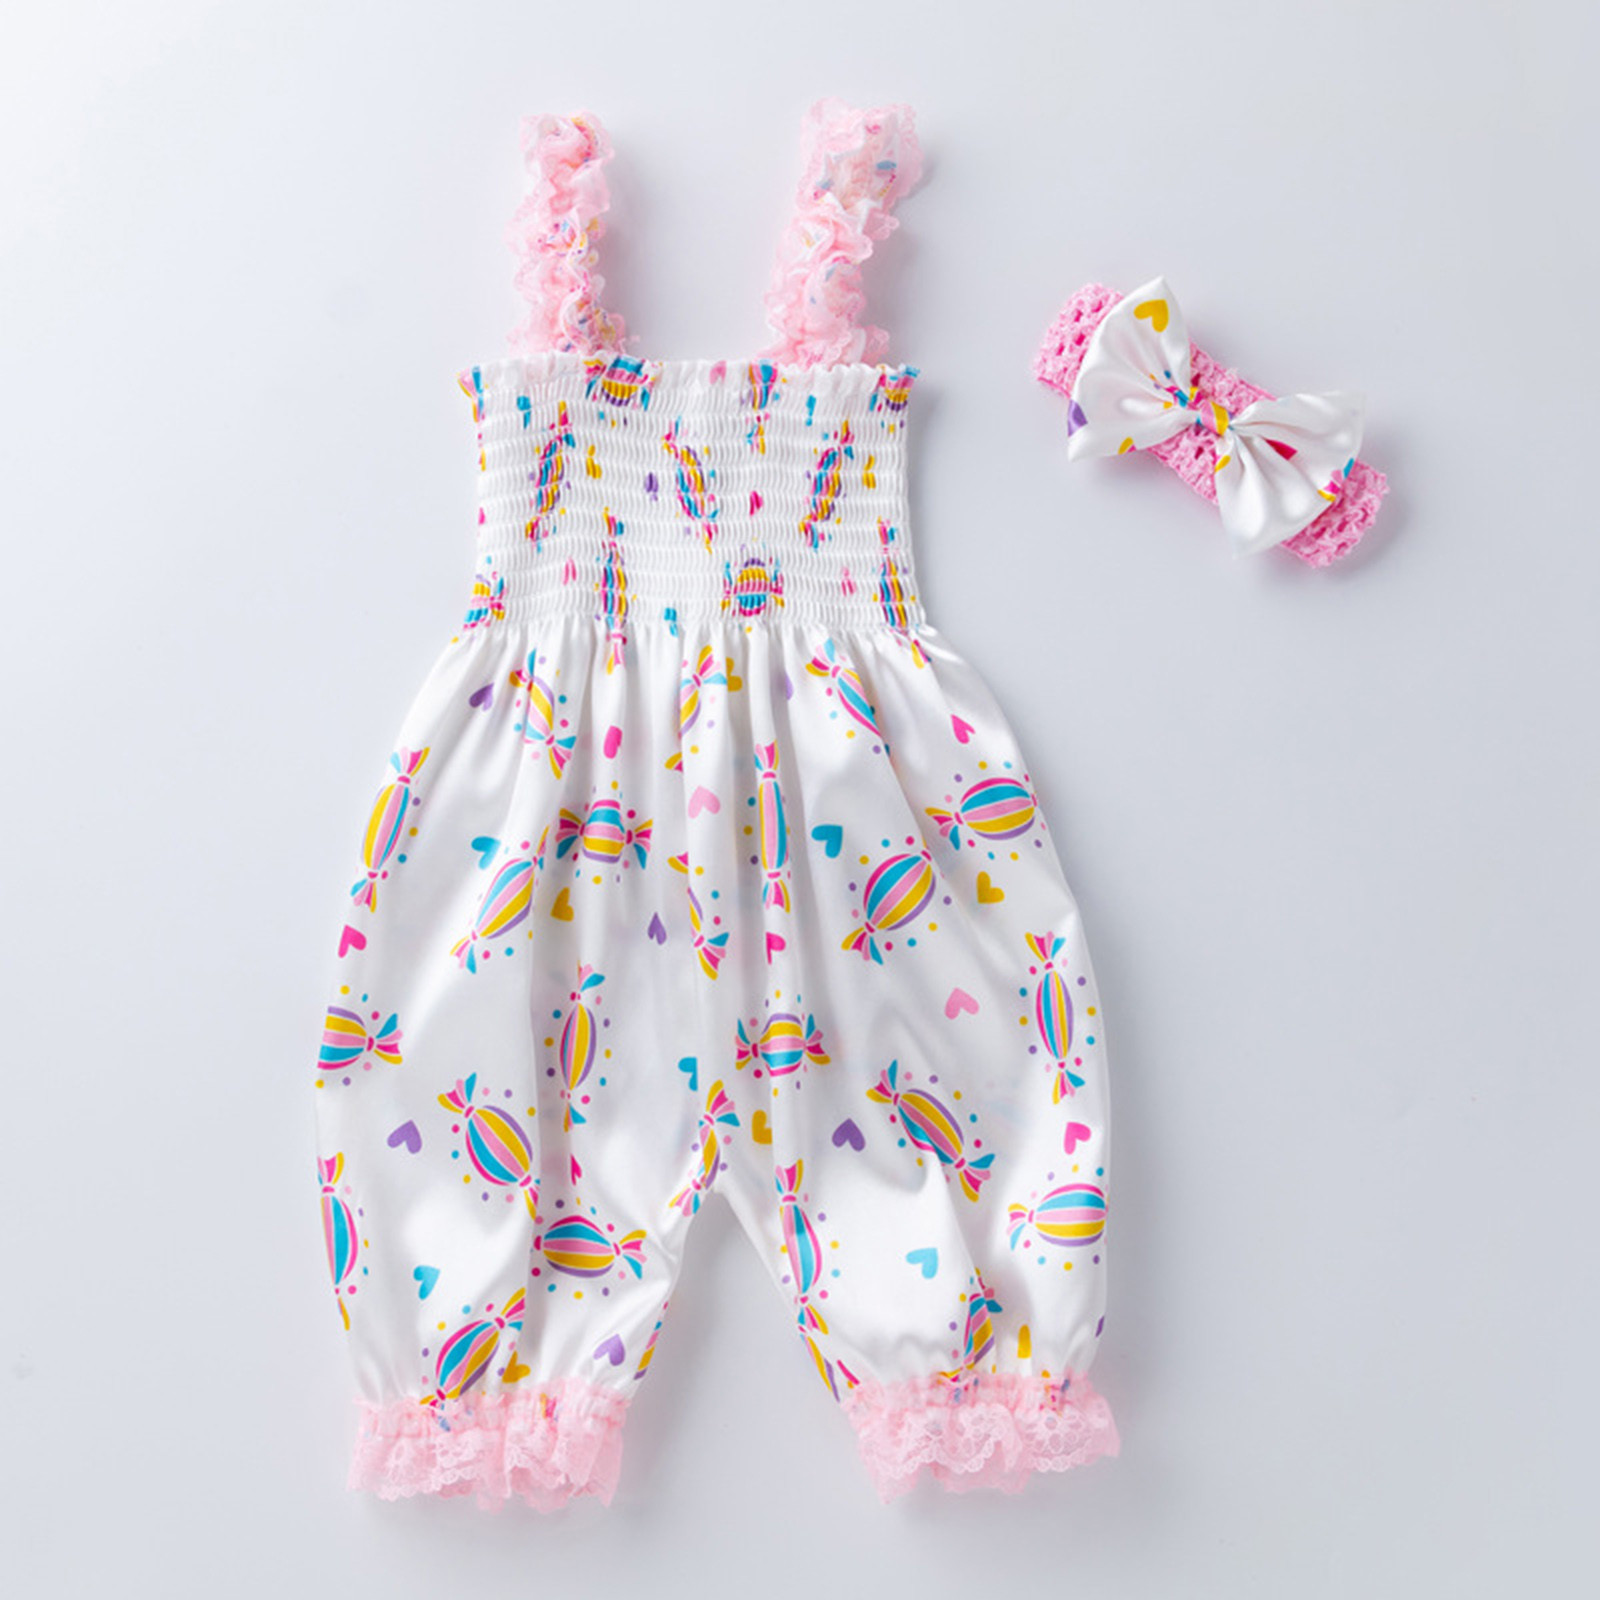 Candy Floral Summer Rompers Newborn Infant Baby Sleeveless Romper Ruffle Overalls Kid Jumpsuit Girl Outfits Toddler Headband Set